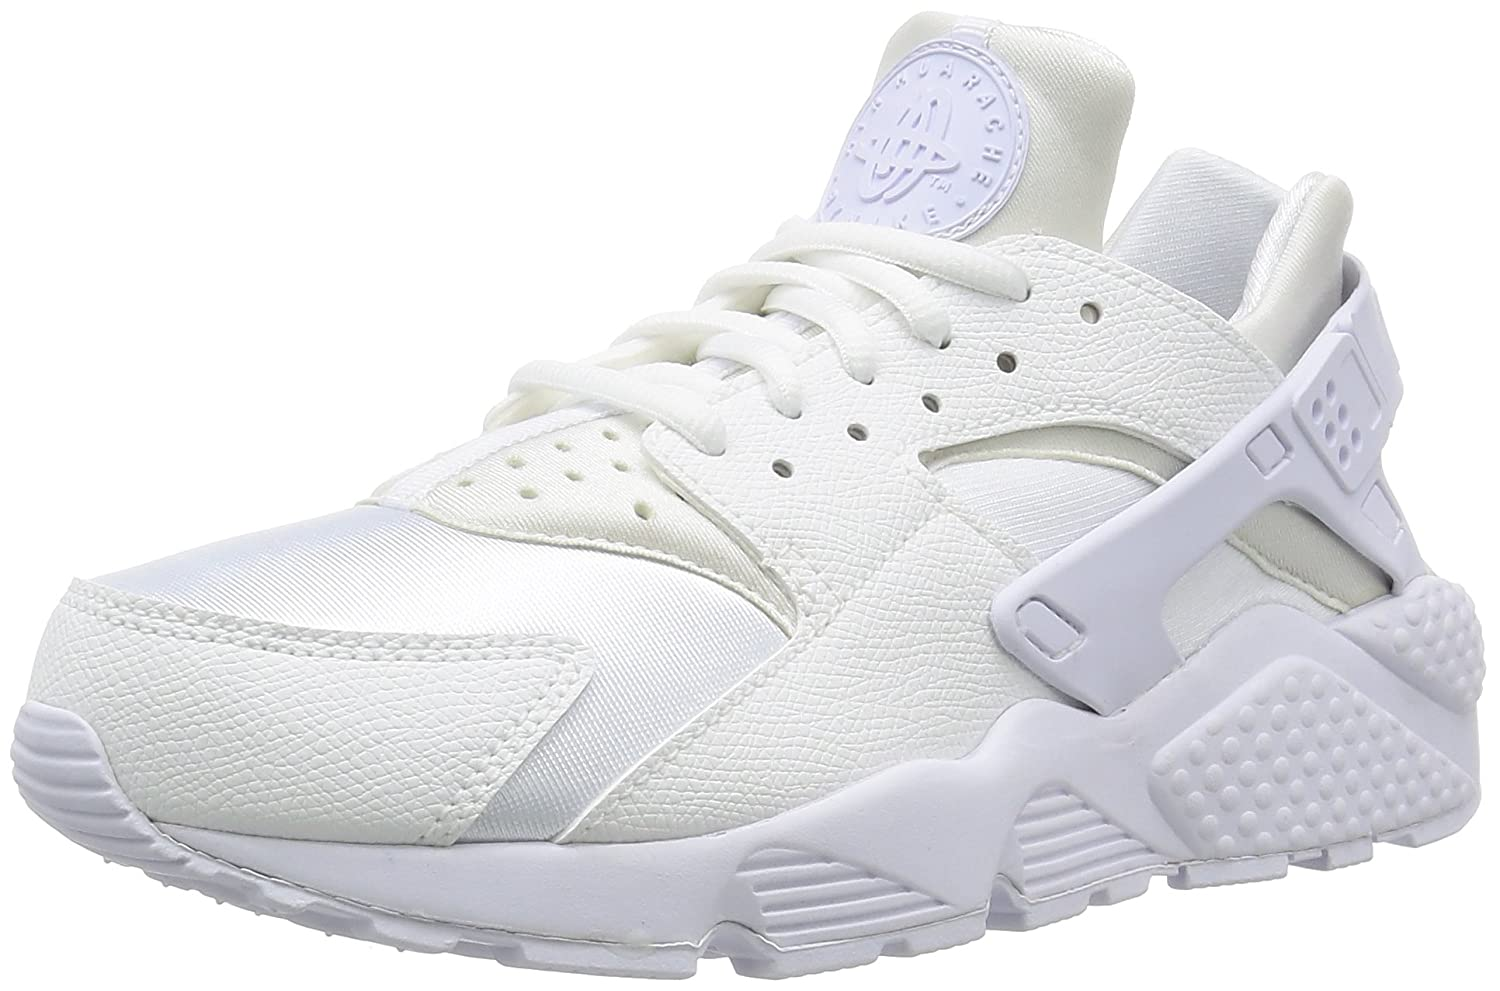 TALLA 38.5 EU. Nike Air Huarache Run, Zapatillas de Deporte Unisex Adulto